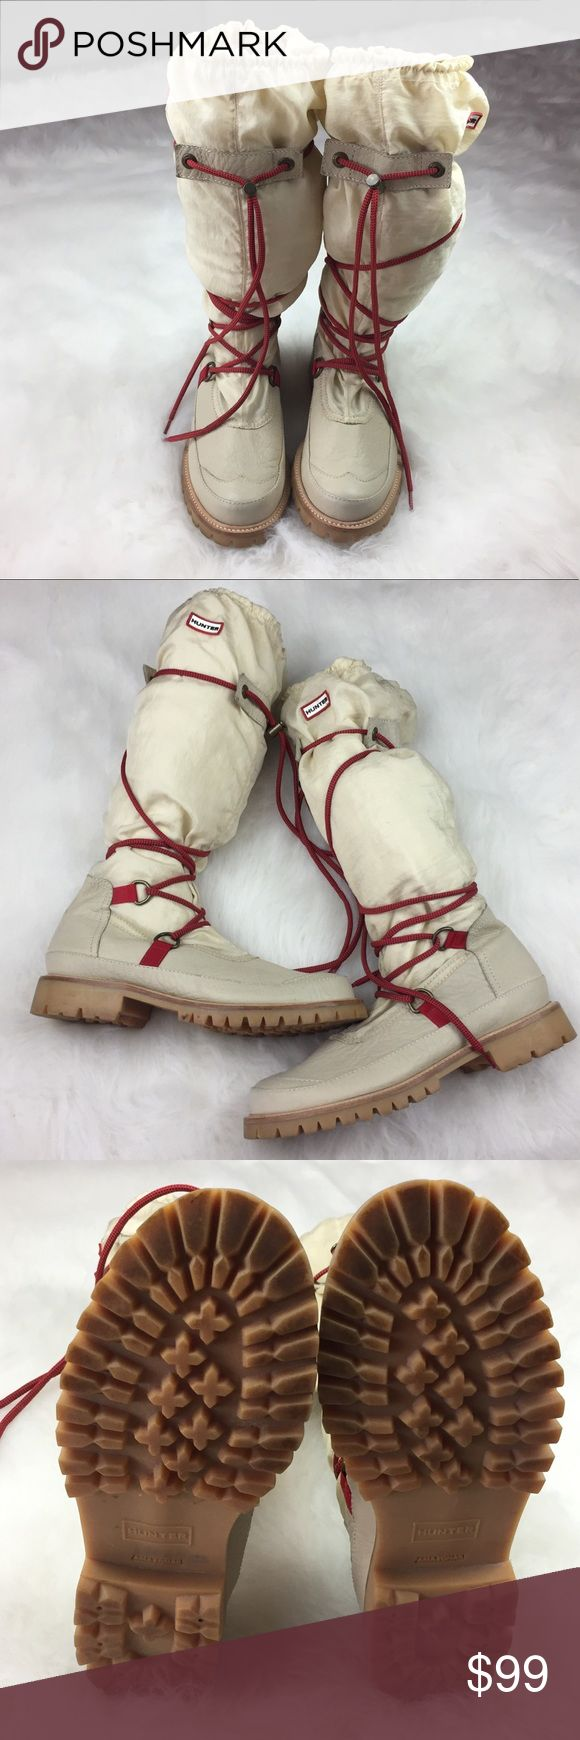 Summit Hunter Amazonas Cream Boots size 9 Summit Hunter Amazonas Boots size 9.  Cream/Ivory Color with Red/Black Laces.  Elastic at top with Hunter Logo on side.  Boots are waterproof and have soft textile lining.  These have been worn a few times so there are a few spots that can easily be spot cleaned but overall they are in gently used condition and are a hard to find boot.   Please see picture's for details.  Thank You for shopping with us, we appreciate your business.  Please view our…